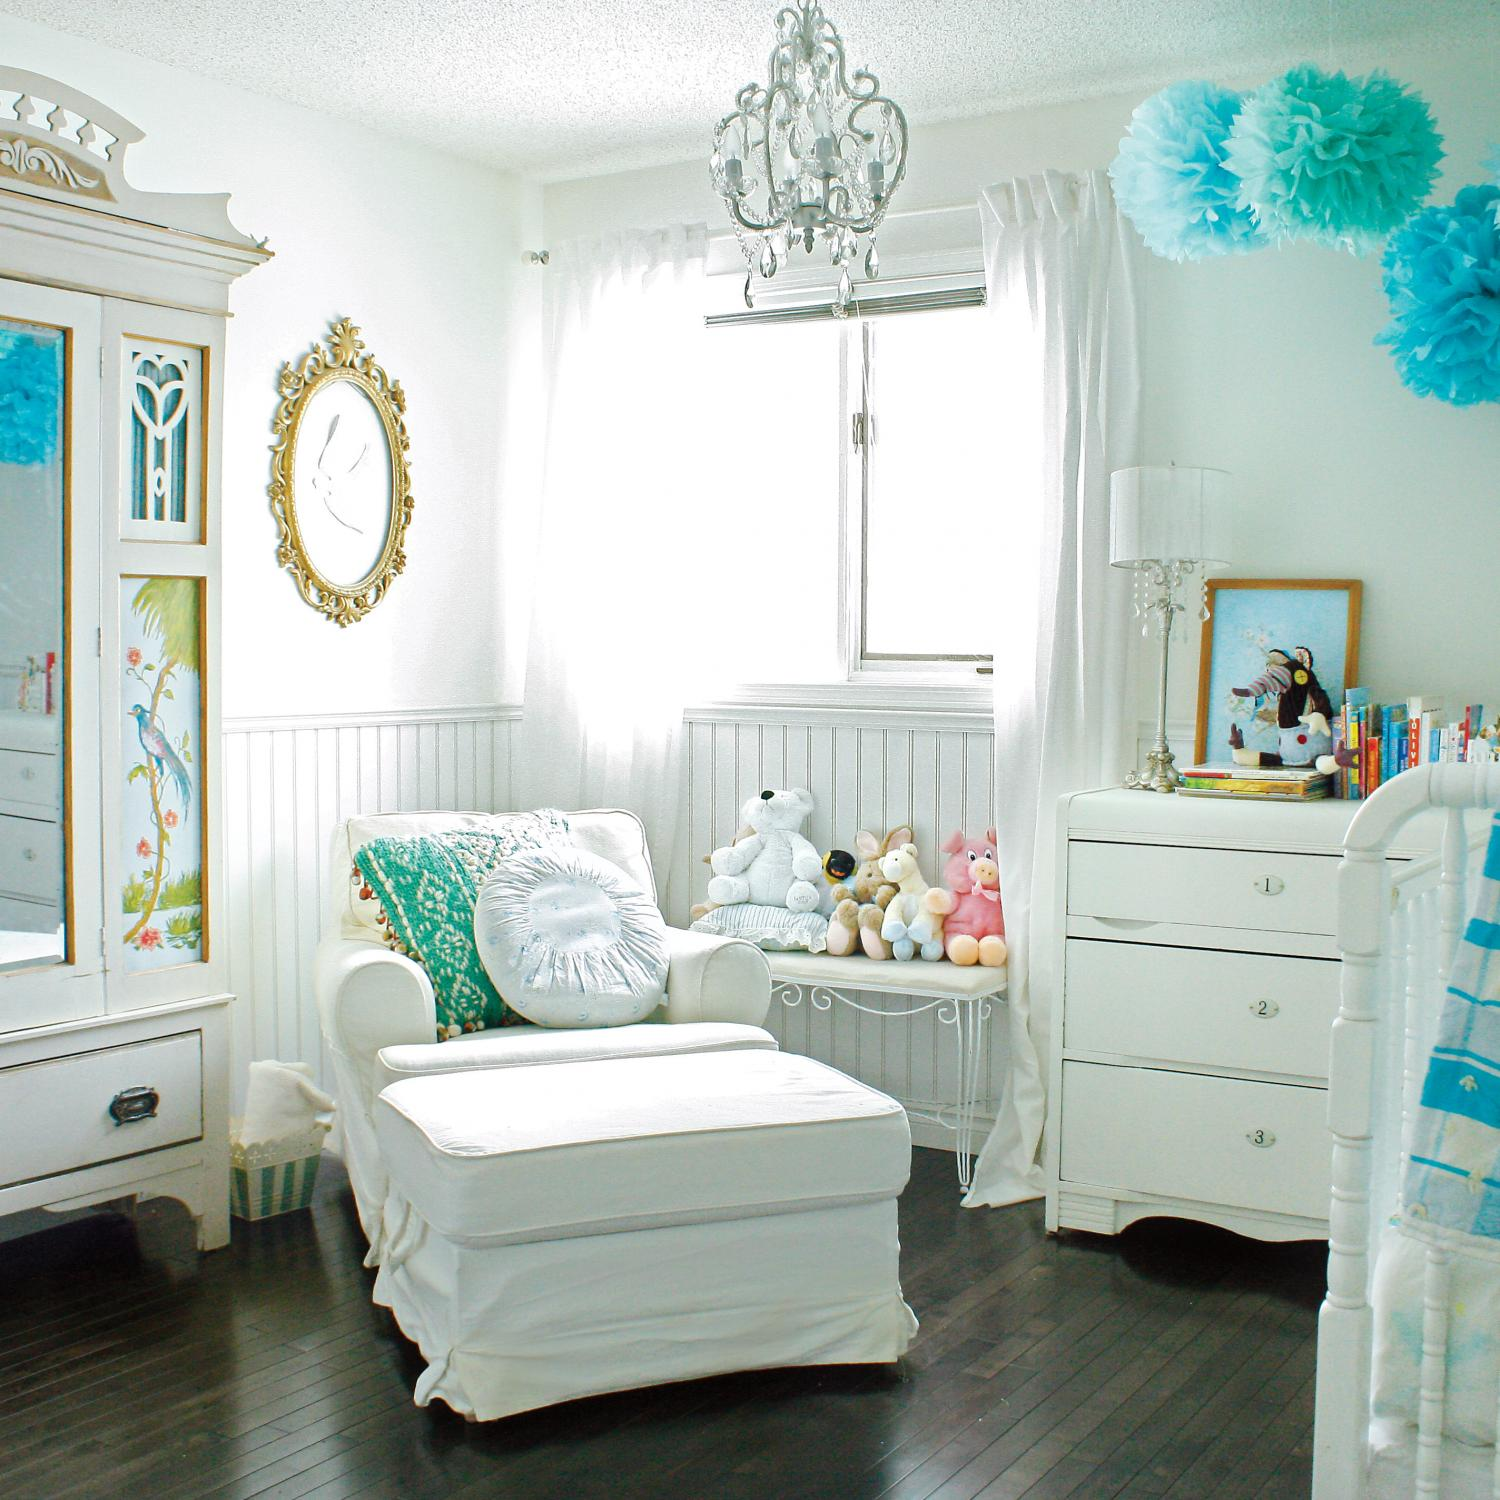 Tips For Decorating A Small Nursery: Nursery Furniture Essentials